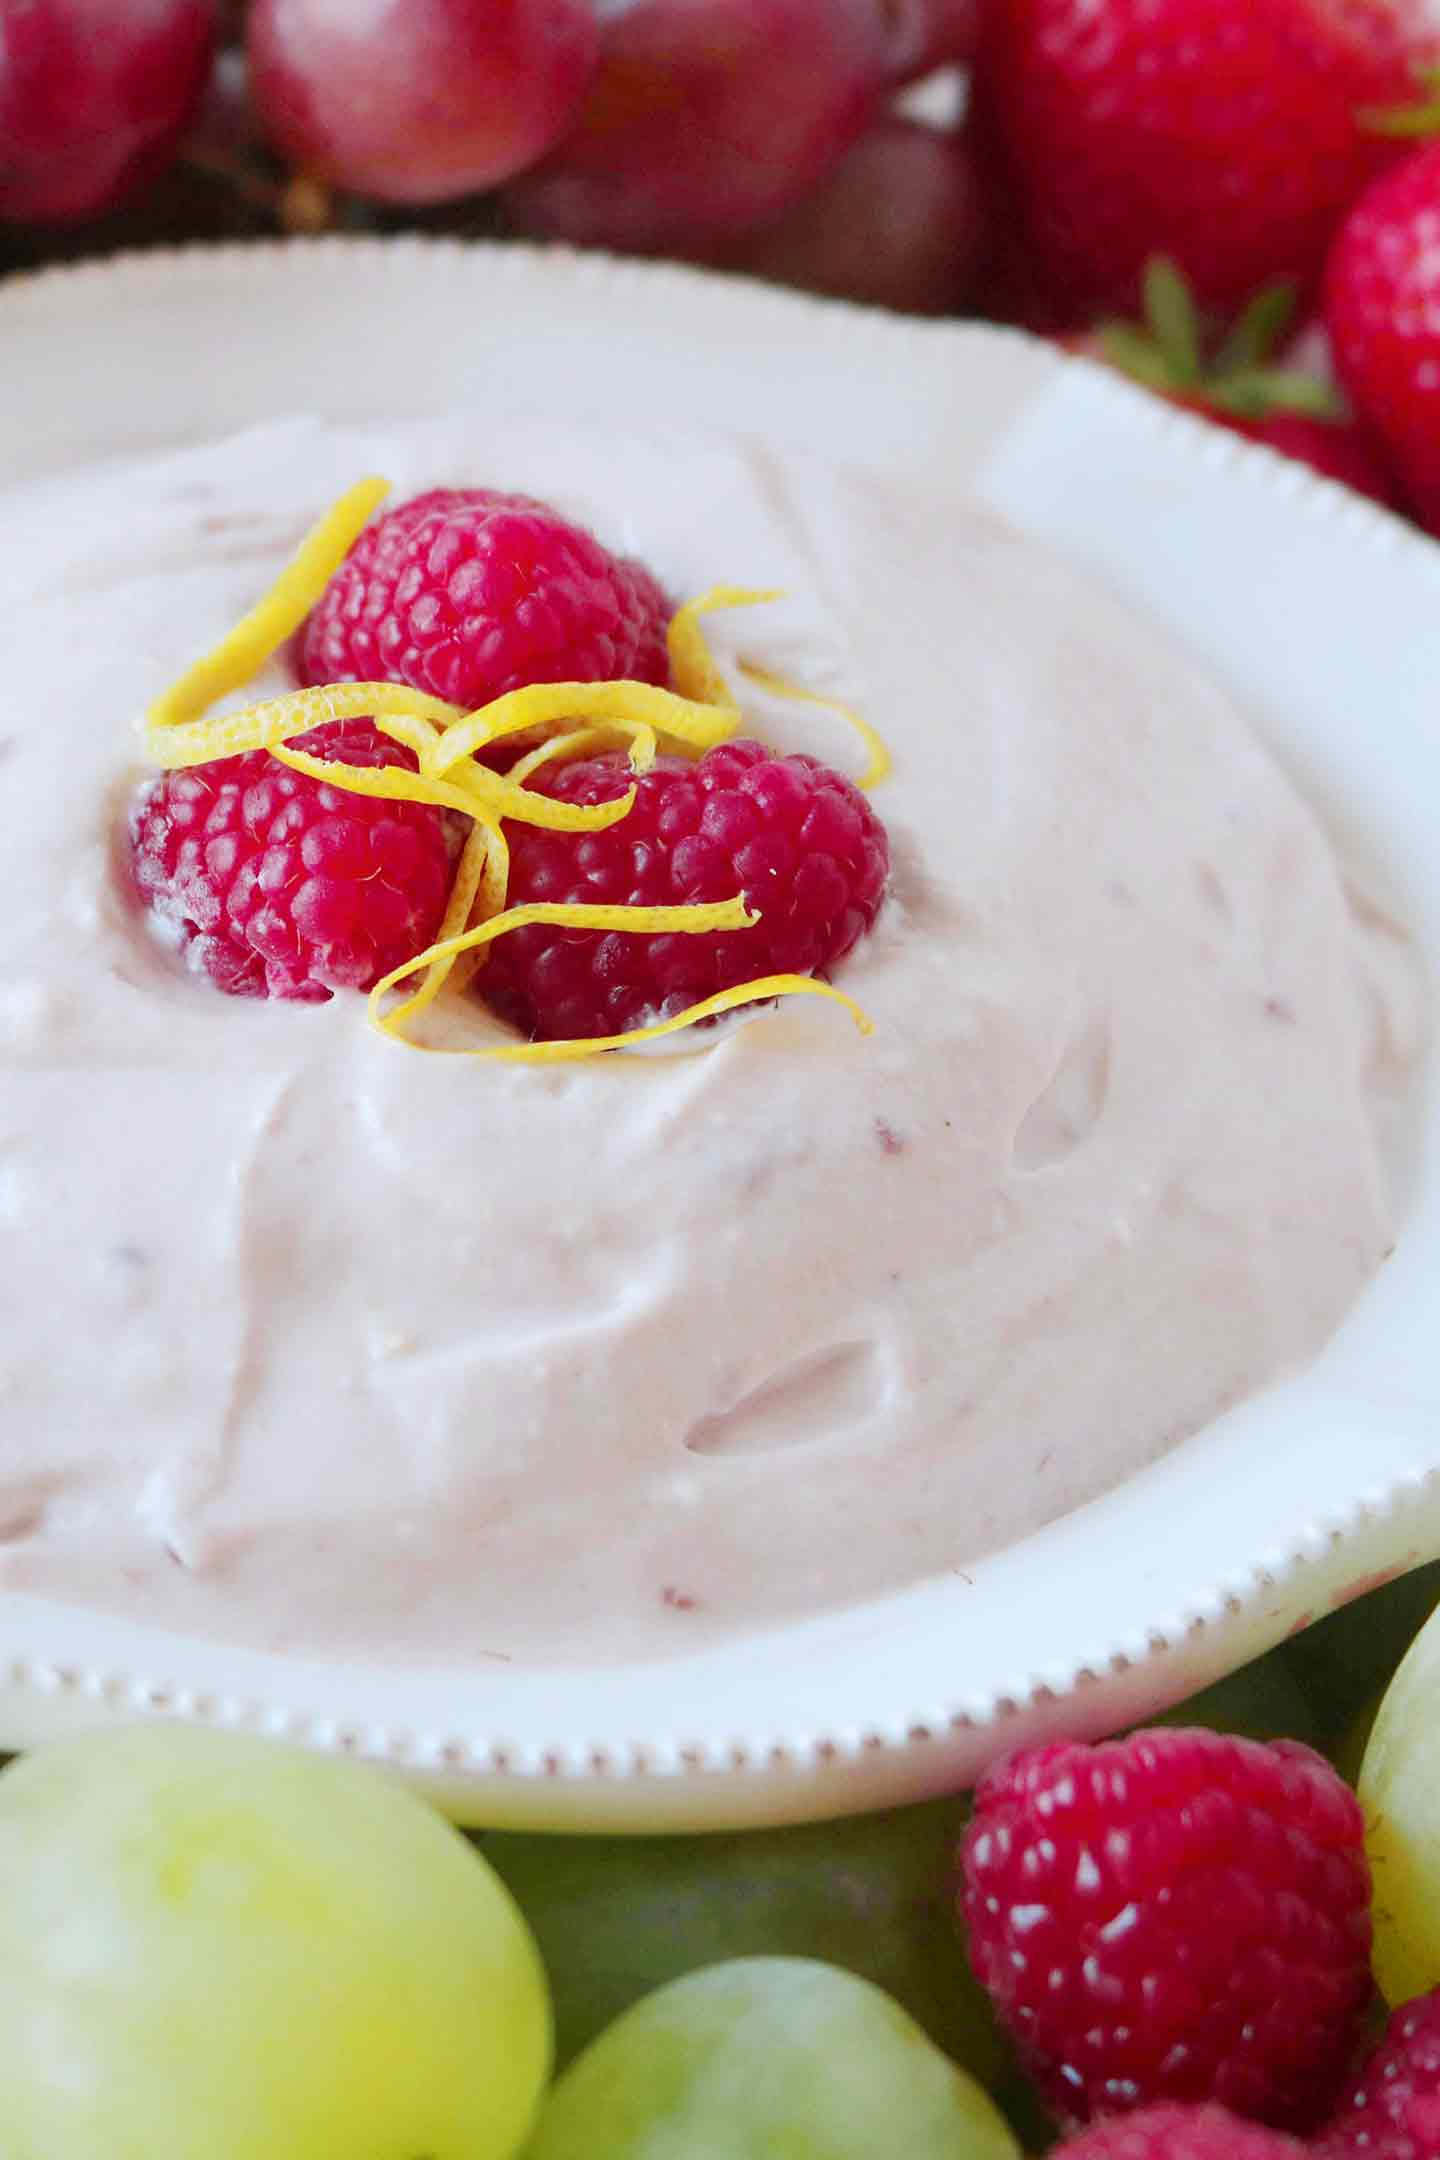 Close up of Raspberry Yogurt Fruit Dip, garnished with fresh raspberries and lemon zest